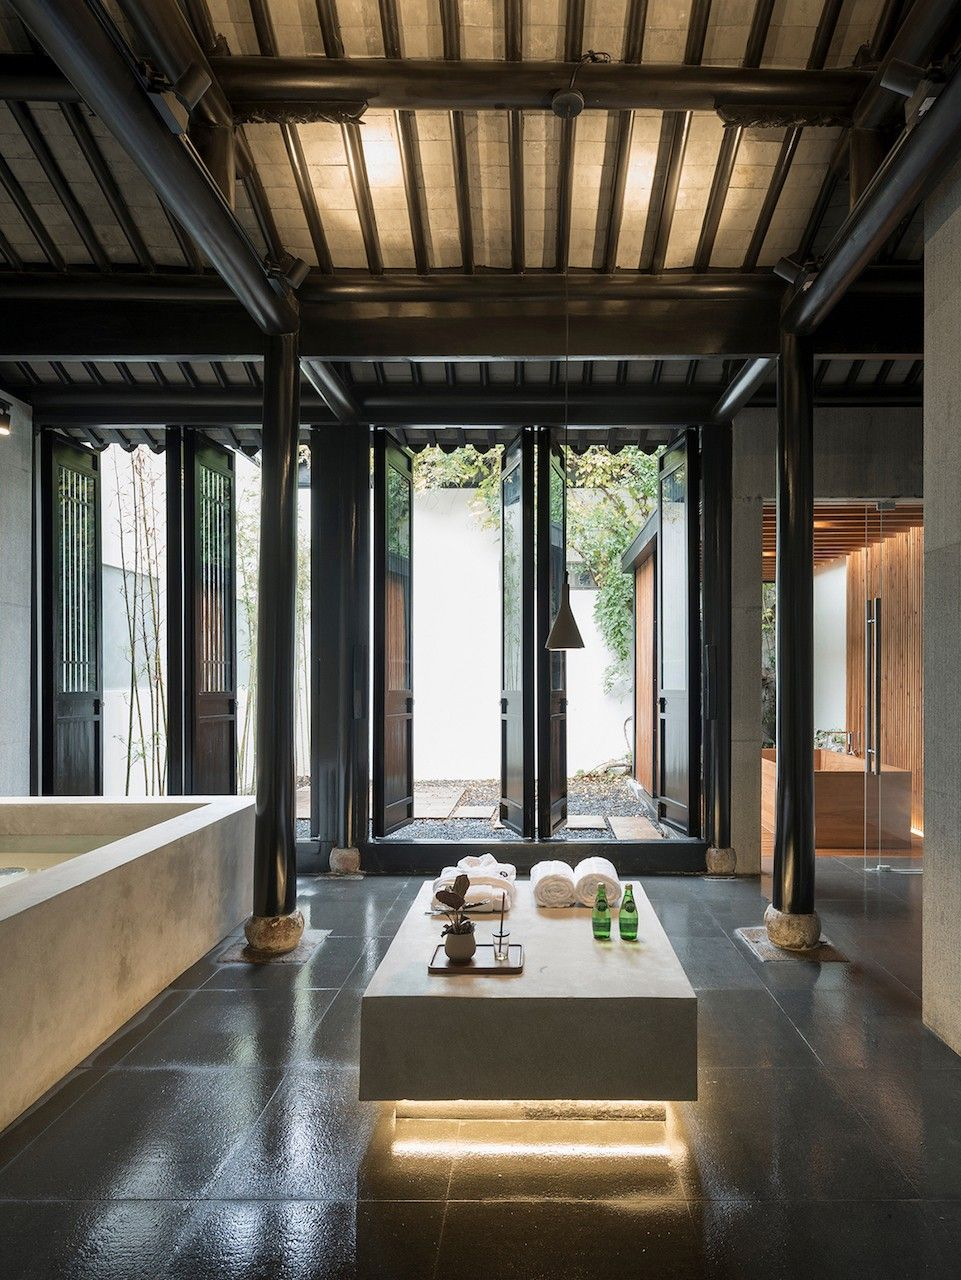 Communal zen spa set within a traditional chinese qing dynasty restoration